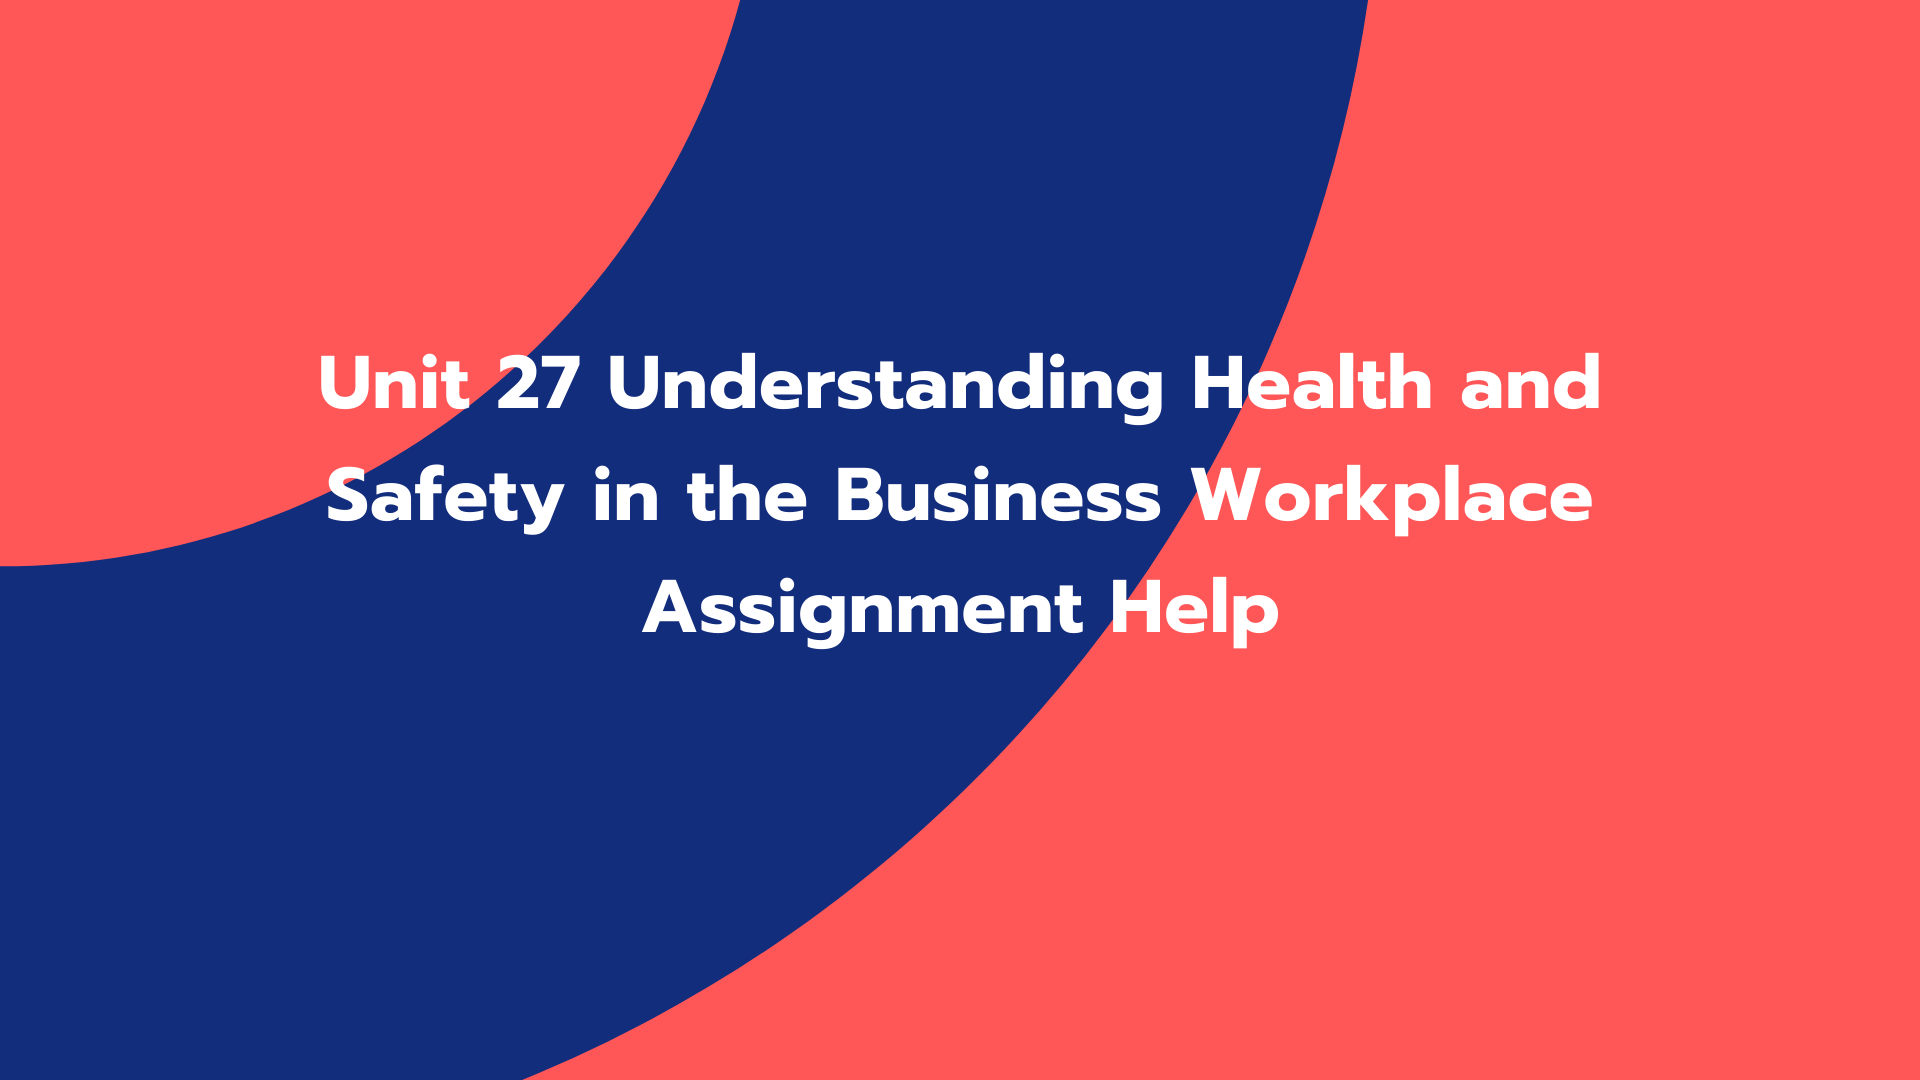 Unit 27 Understanding Health and Safety in the Business Workplace Assignment Help